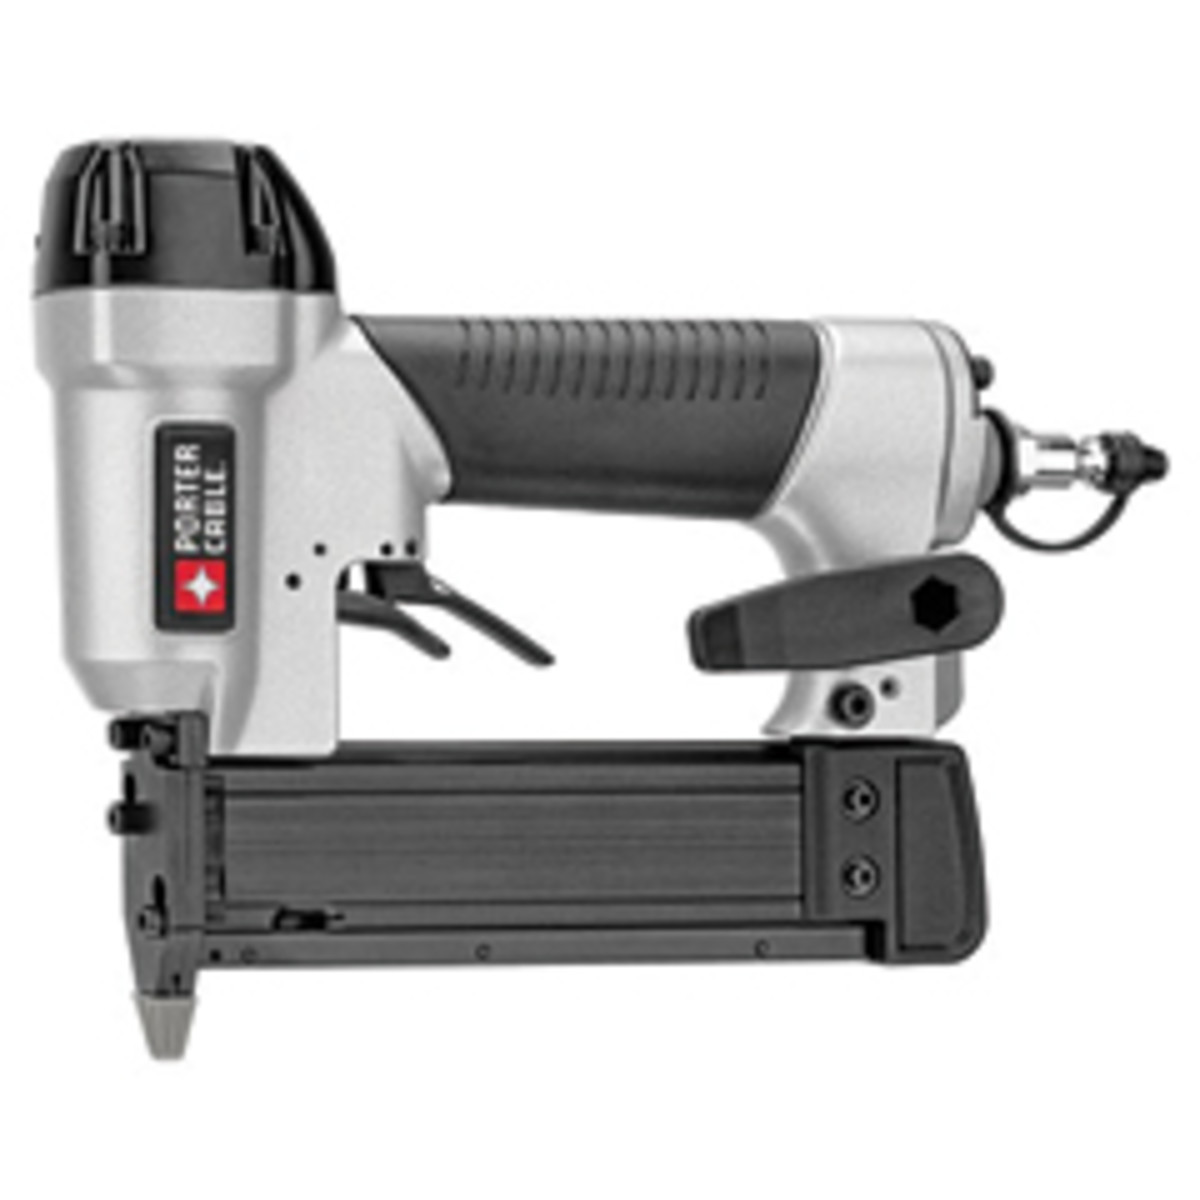 Porter-Cable's 23-gauge nailer.